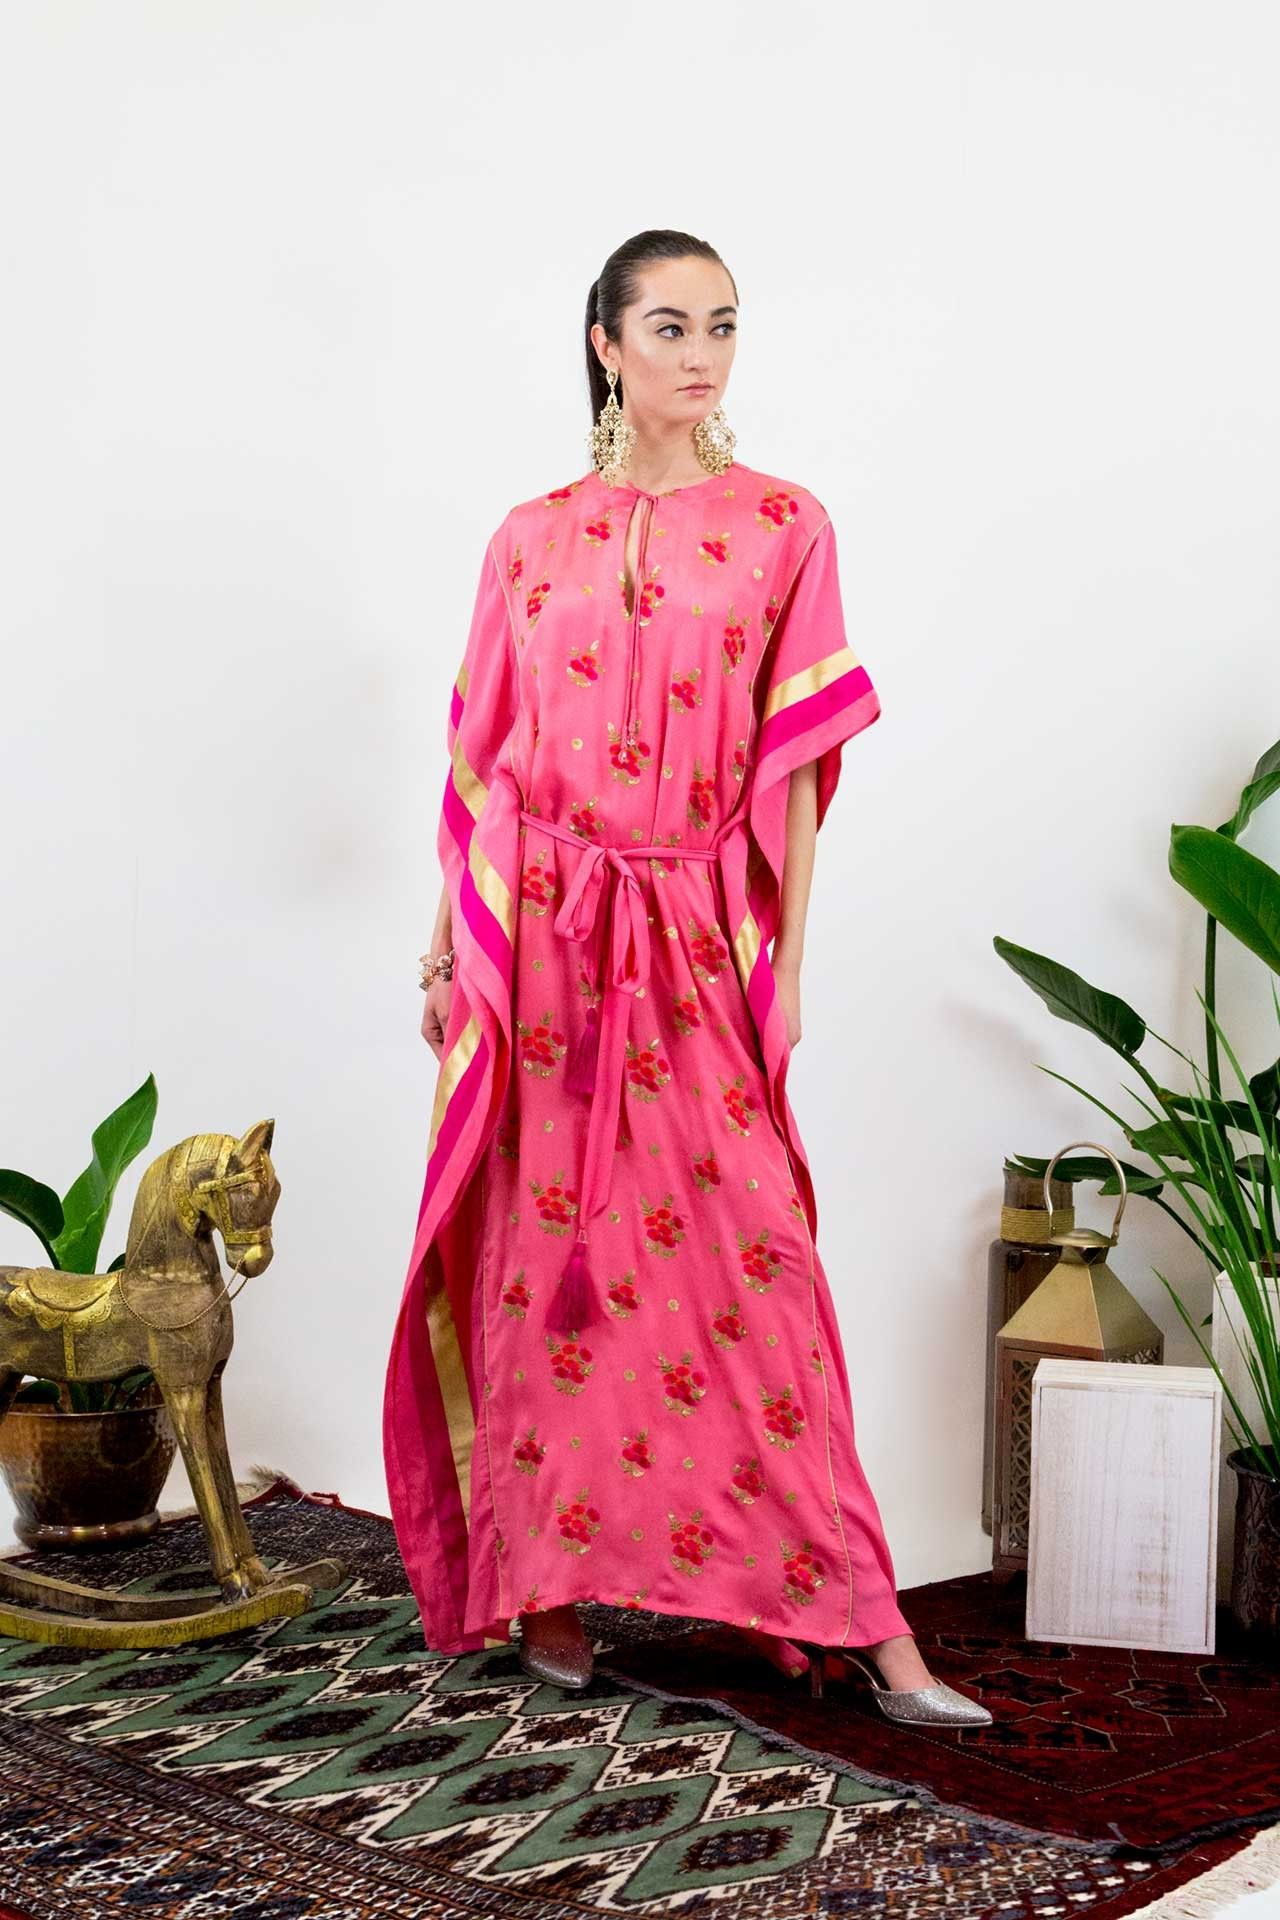 Floral embroidered pink long kaftan kaftans kaftan and long kaftan